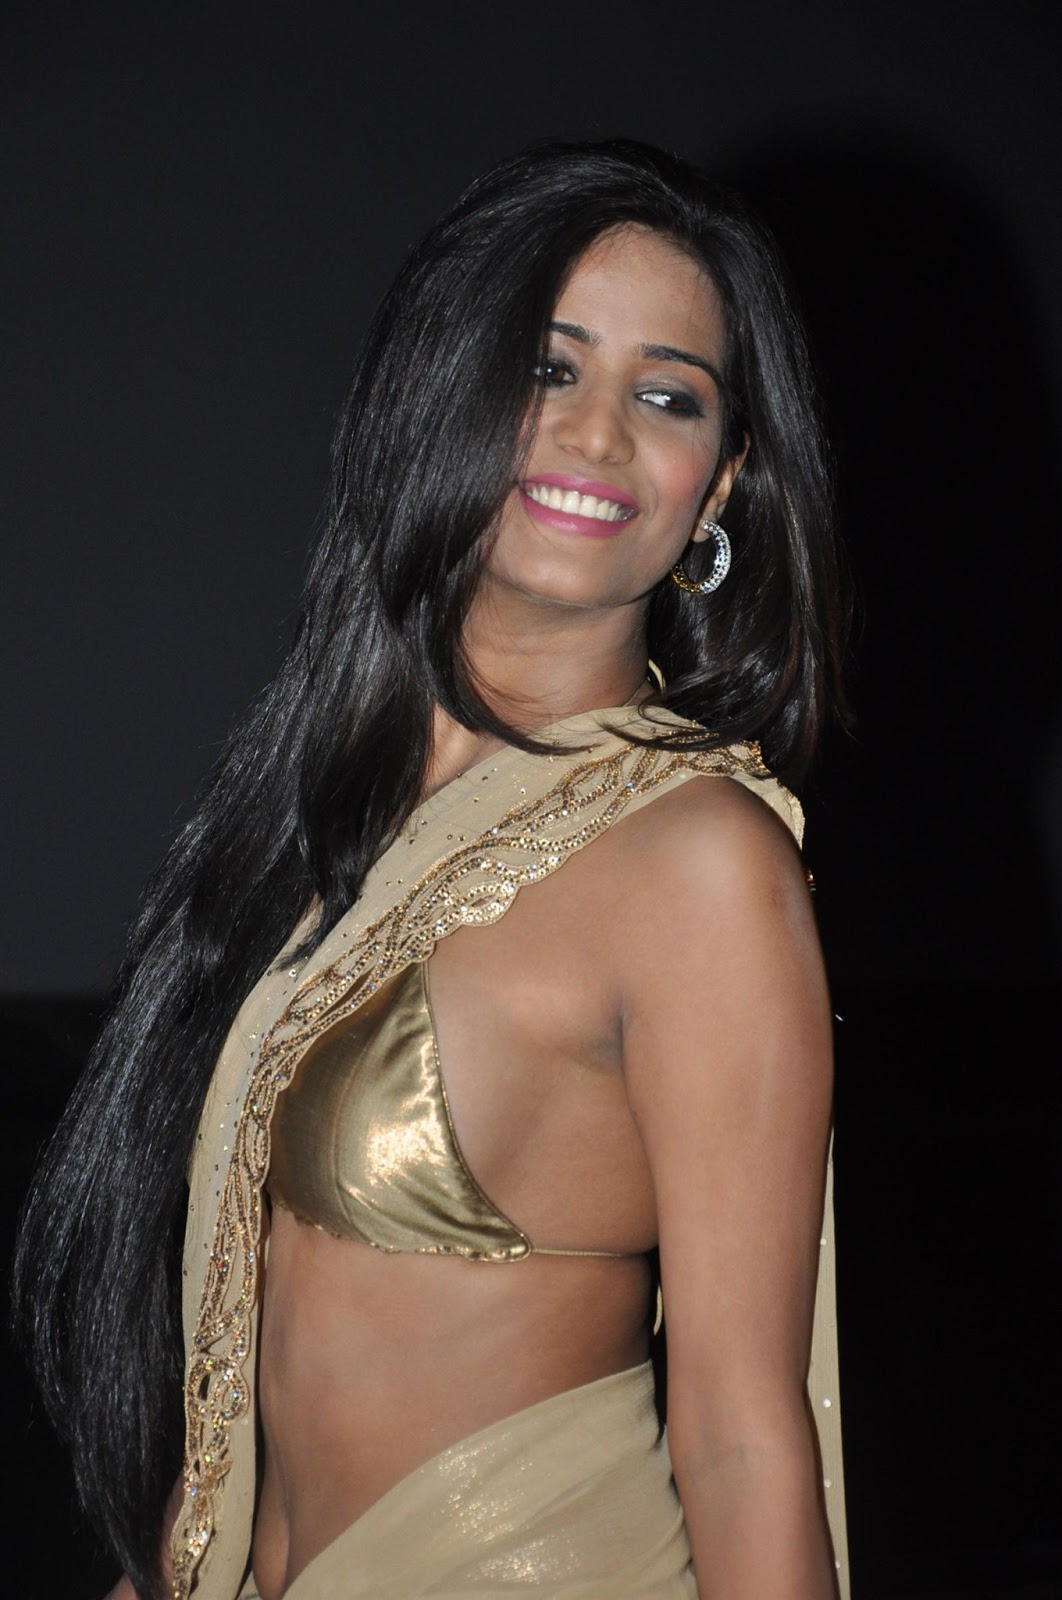 Poonam Pandey First Time In Saree - Hd Group Sex-8527